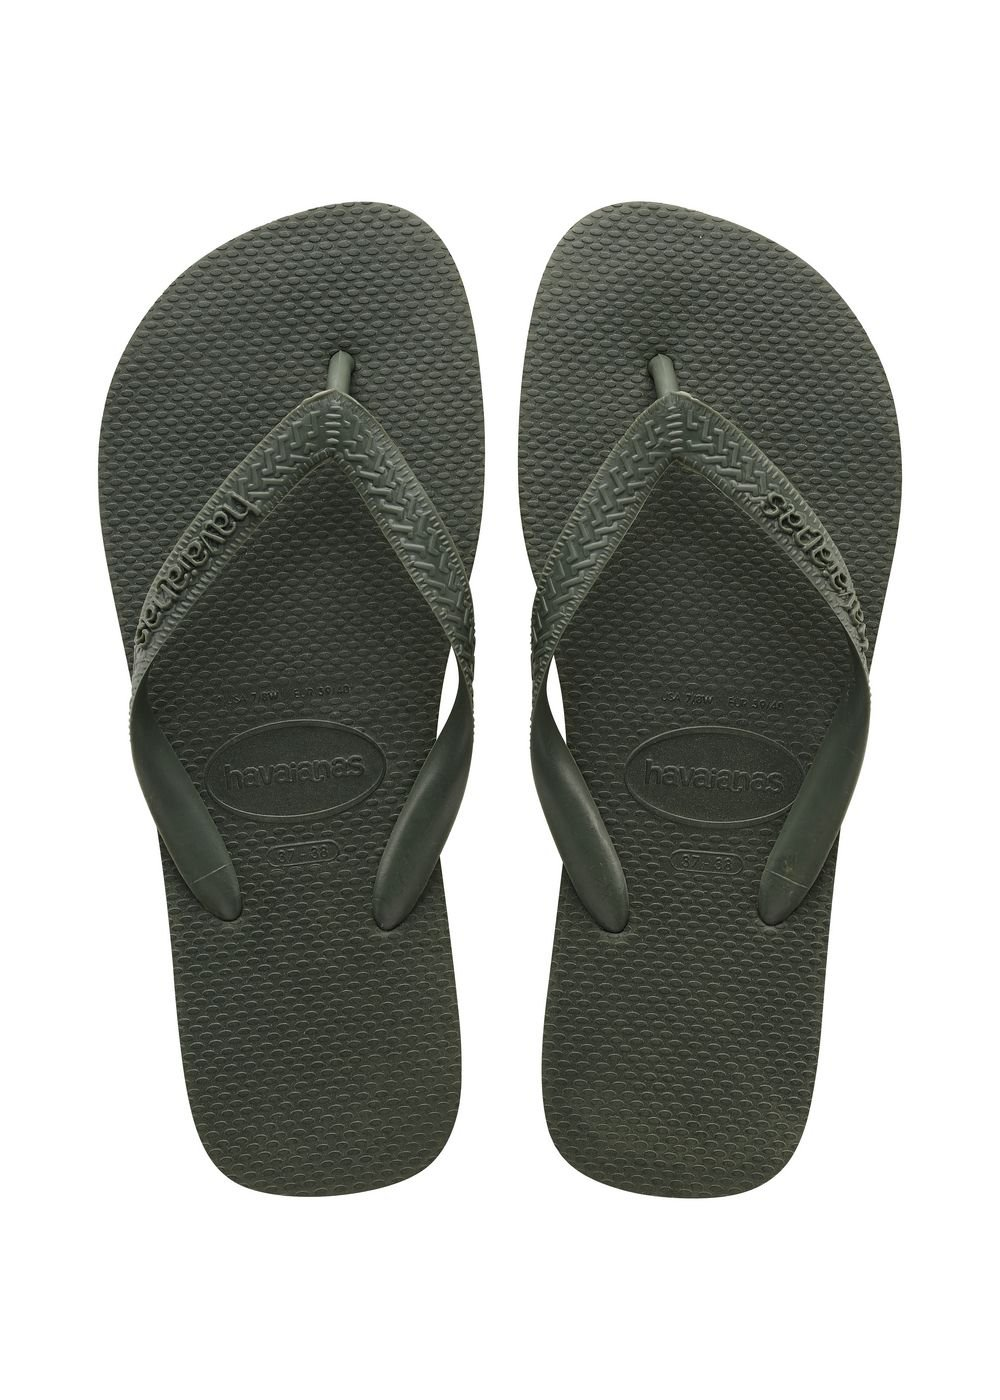 851baa3c2a00c Havaianas Top Thongs (Green Olive